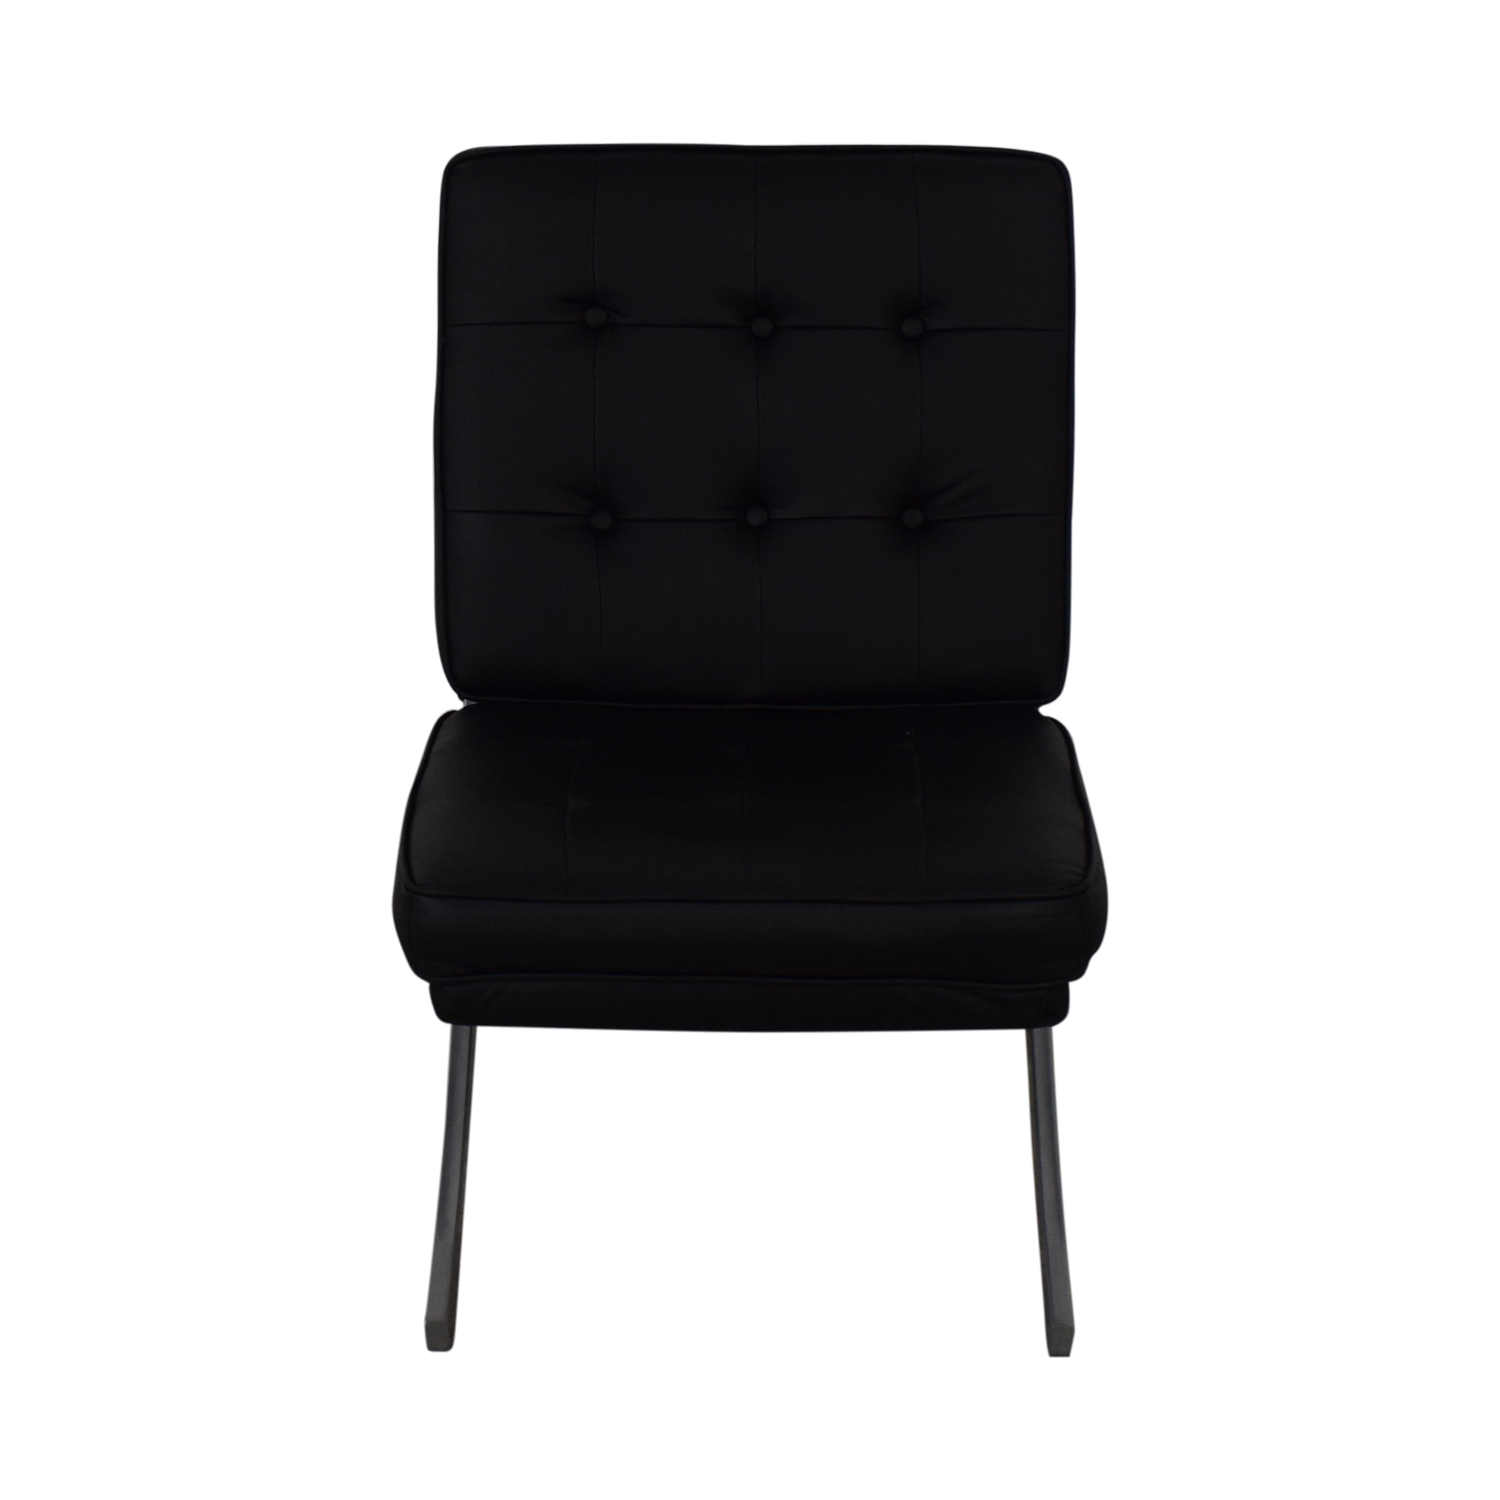 Raymour & Flanigan Raymour & Flanigan Black Accent Chair nyc